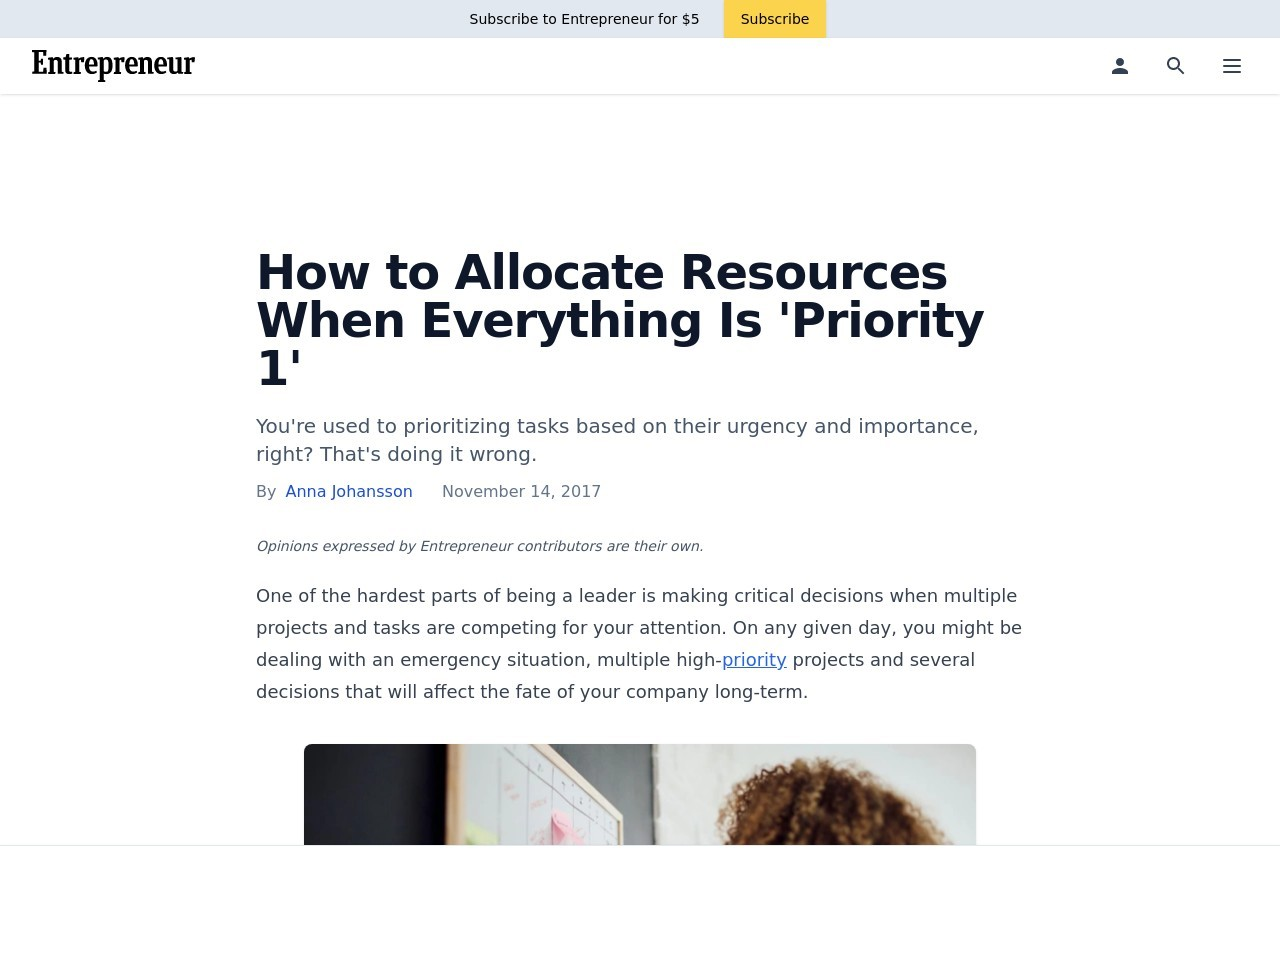 How to Allocate Resources When Everything Is 'Priority 1'